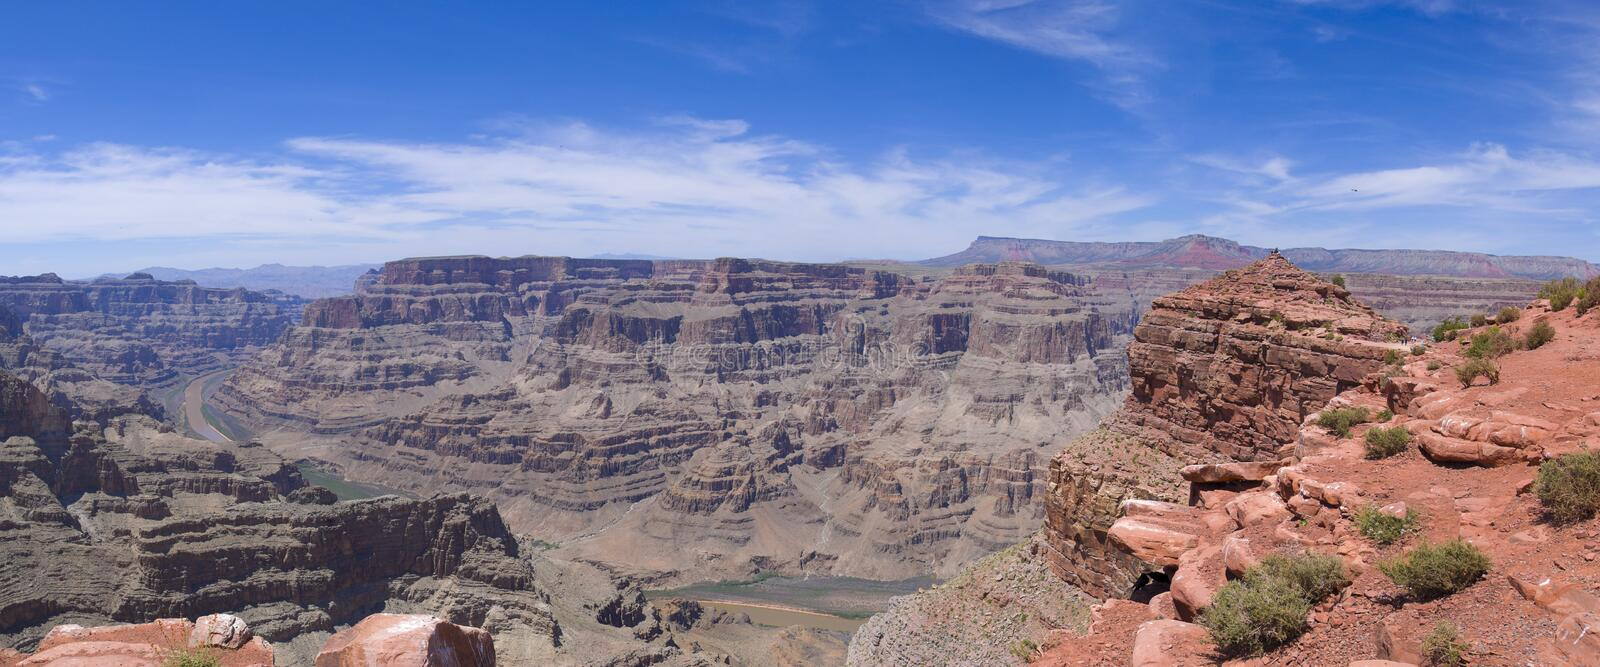 Guano-Punkt-Grand- Canyonpanorama stockfoto